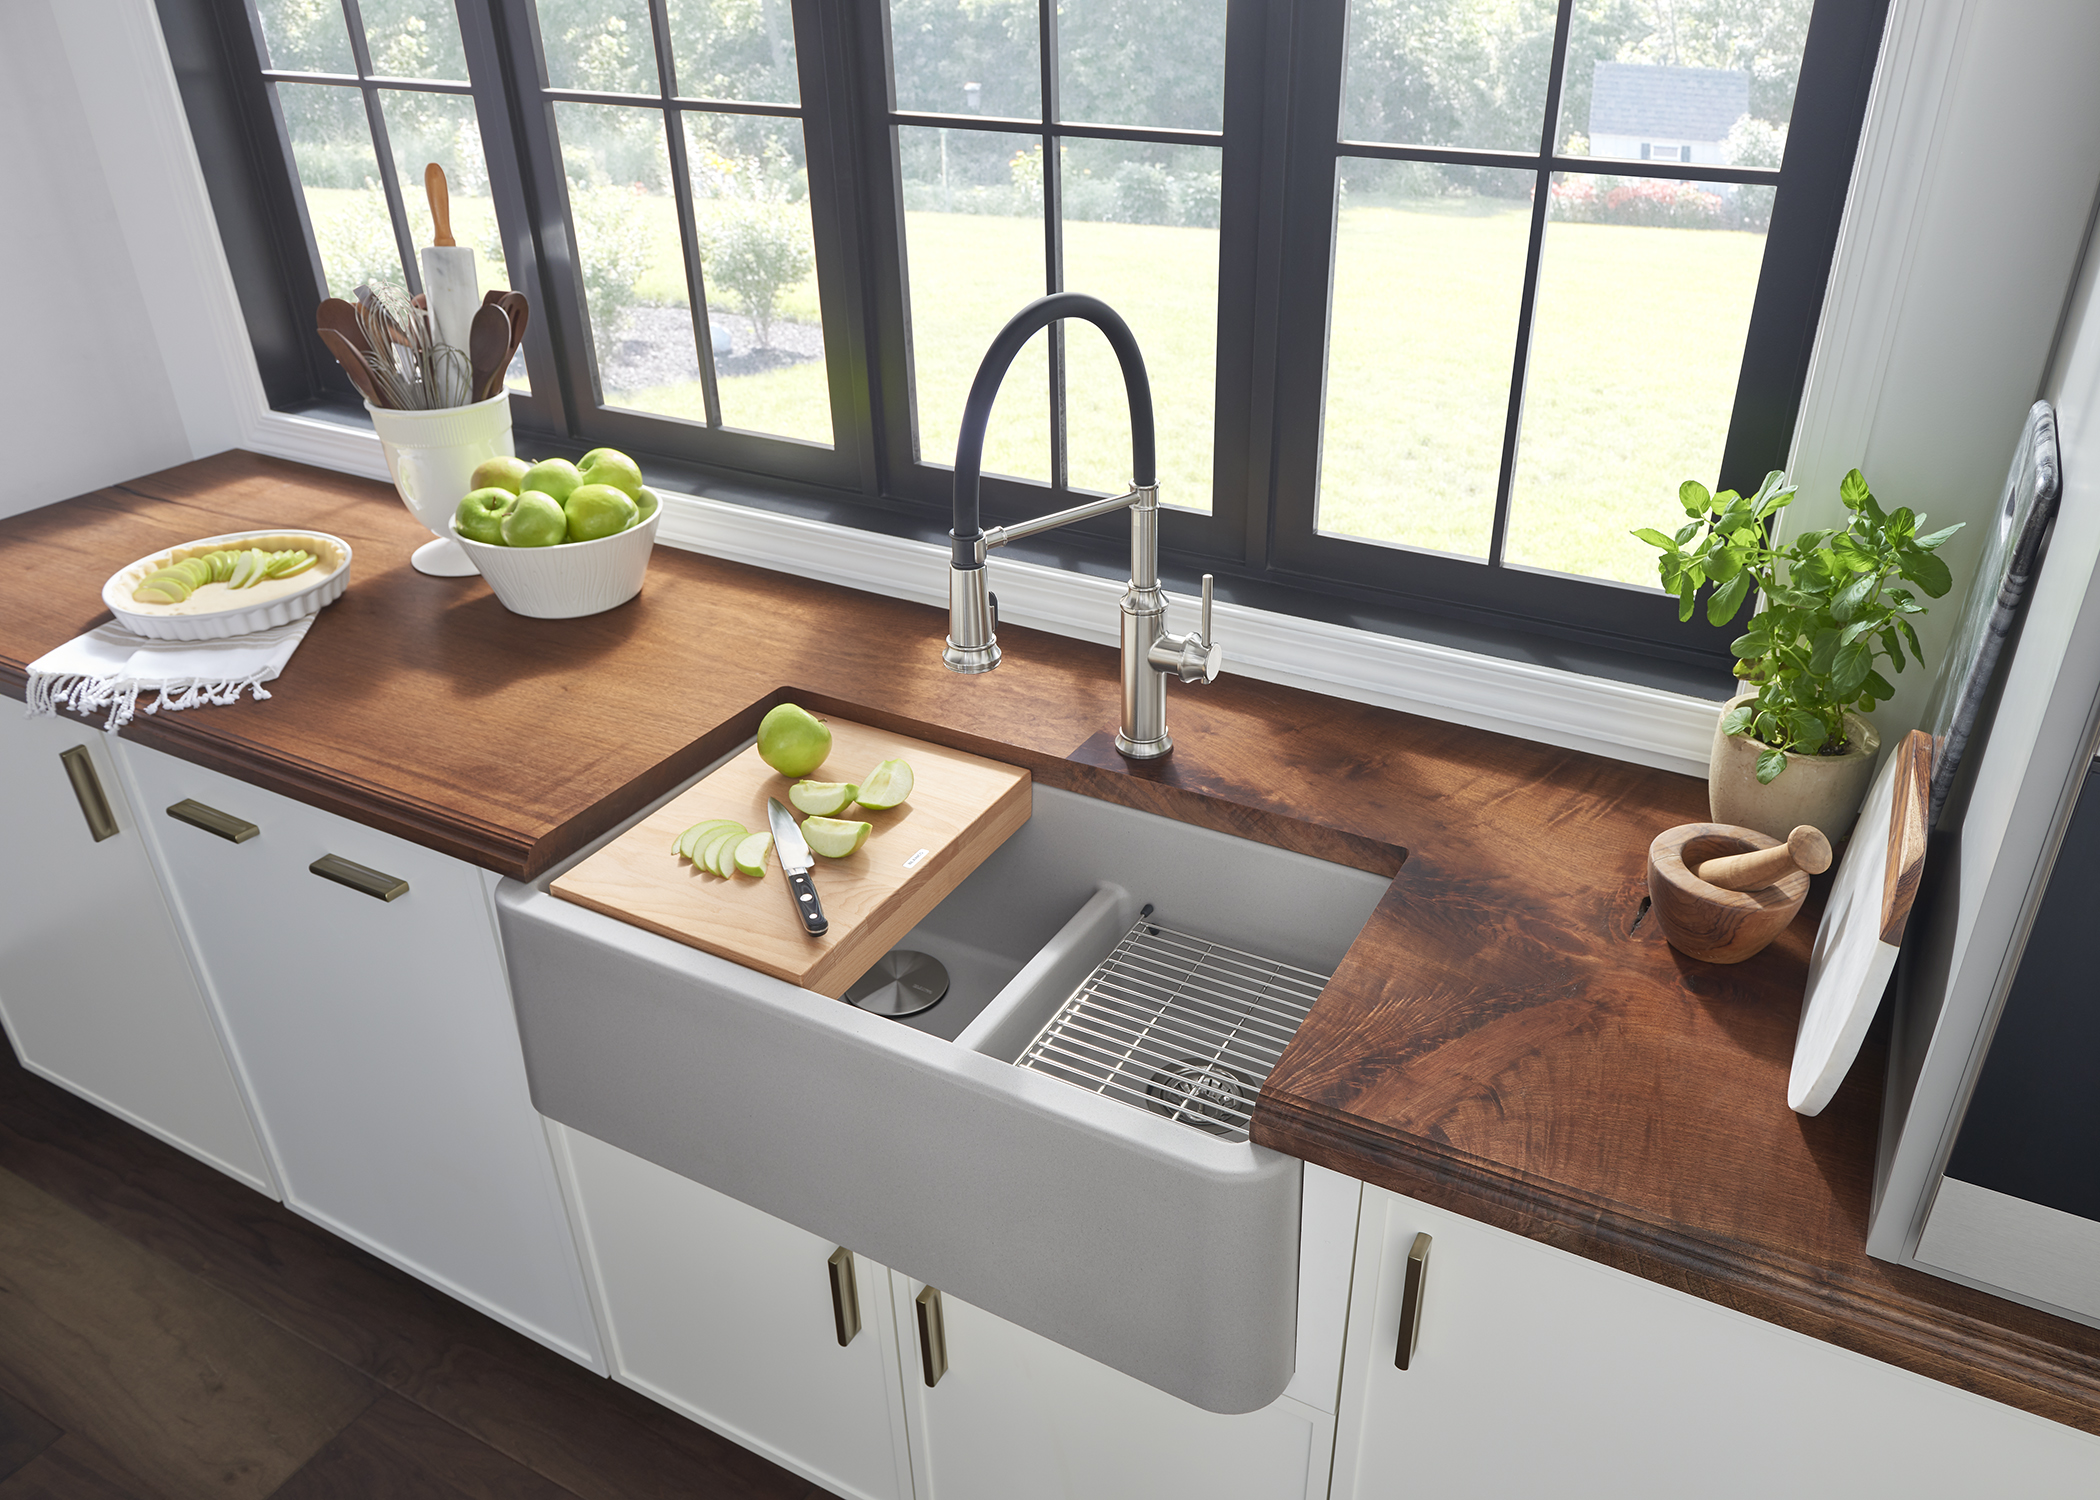 blanco gray sink with cutting board connected